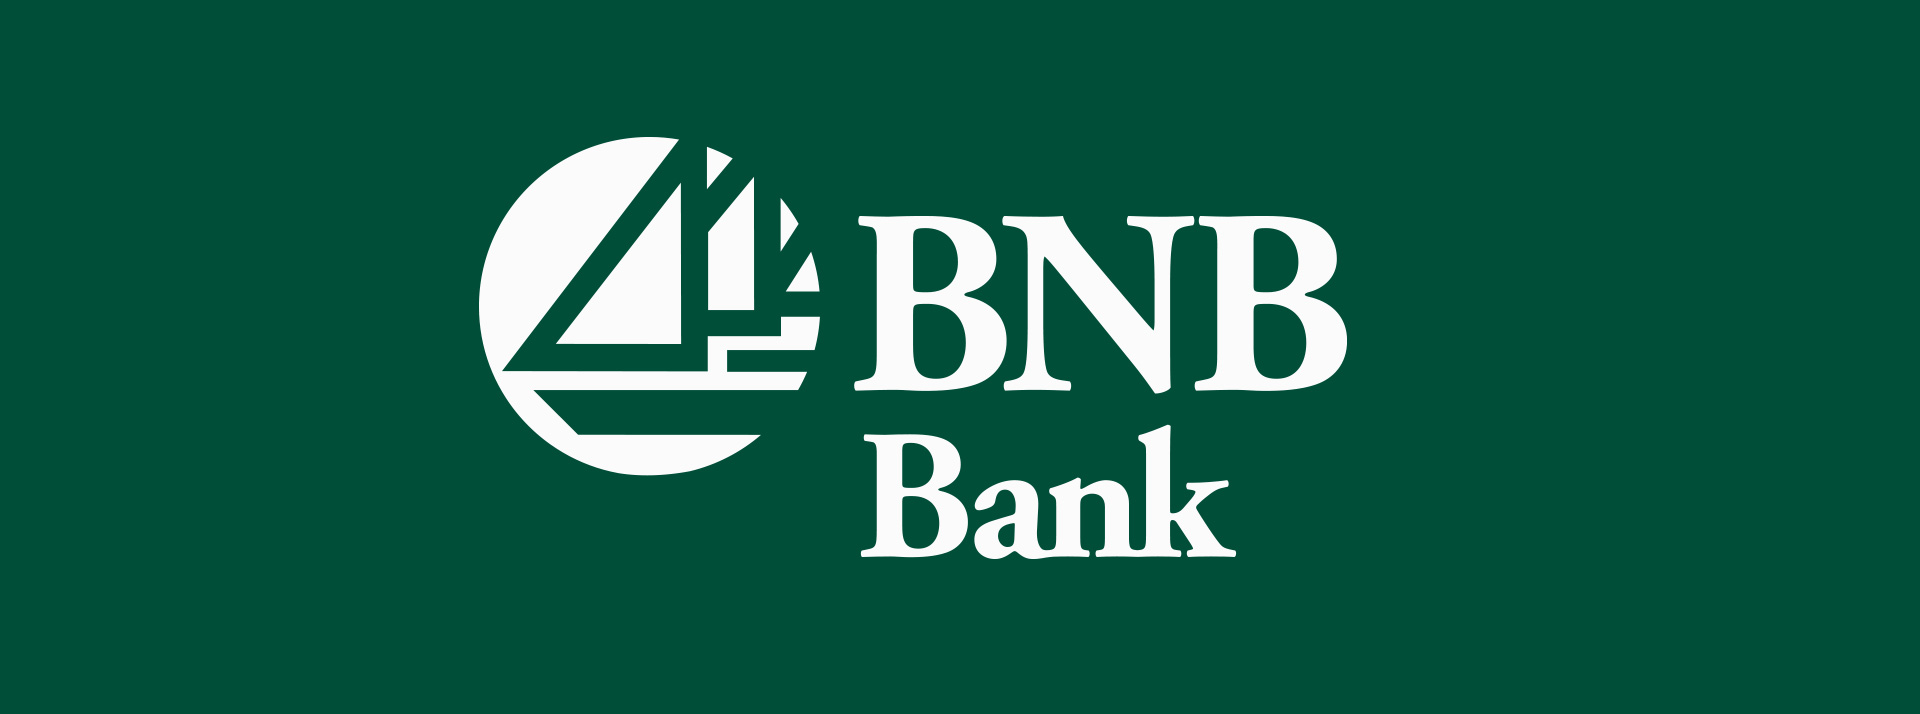 BNB Bank Logo